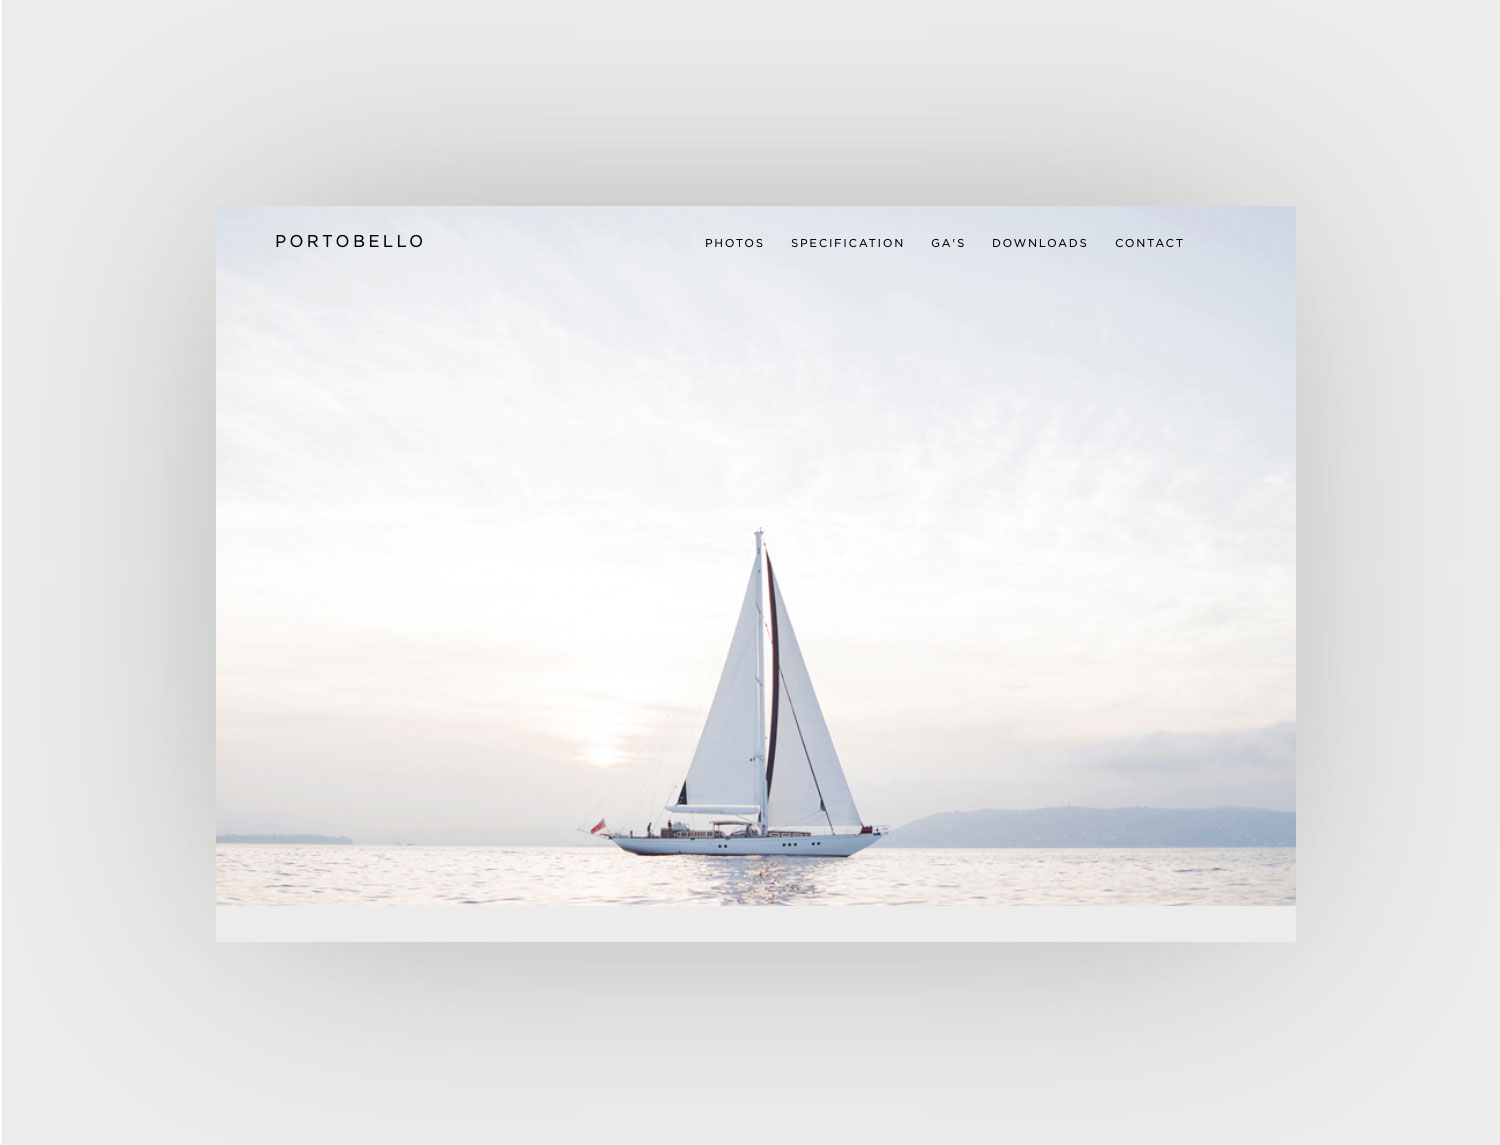 portobello-website-landscape.jpg